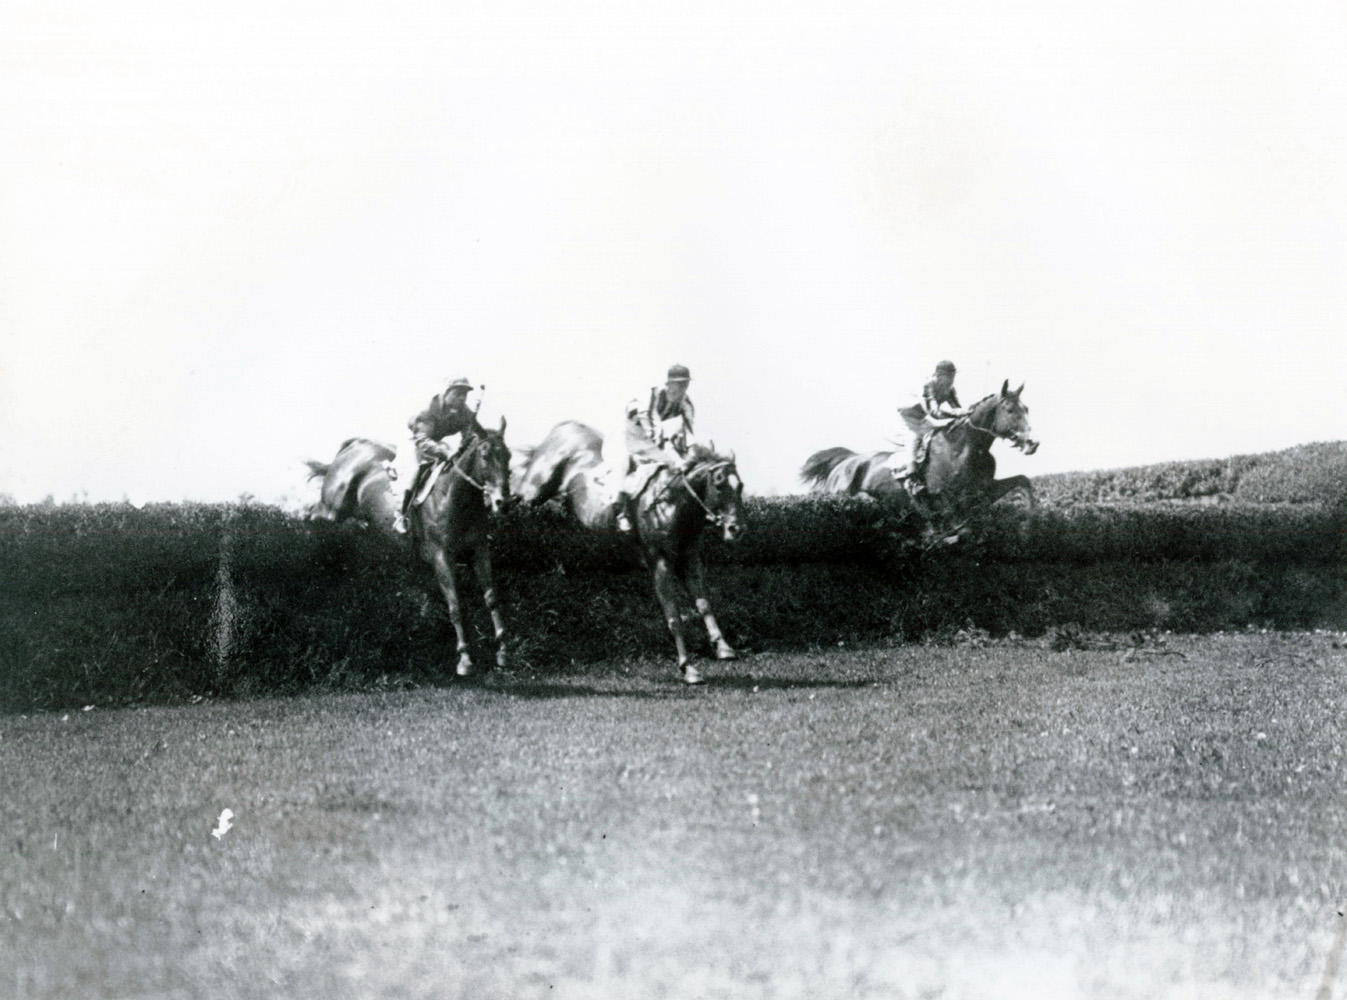 J. Dallet Byers and Fairmount (center) clearing a jump in the 1938 Charles Appleton Memorial Cup at Belmont (Keeneland Library Cook Collection)